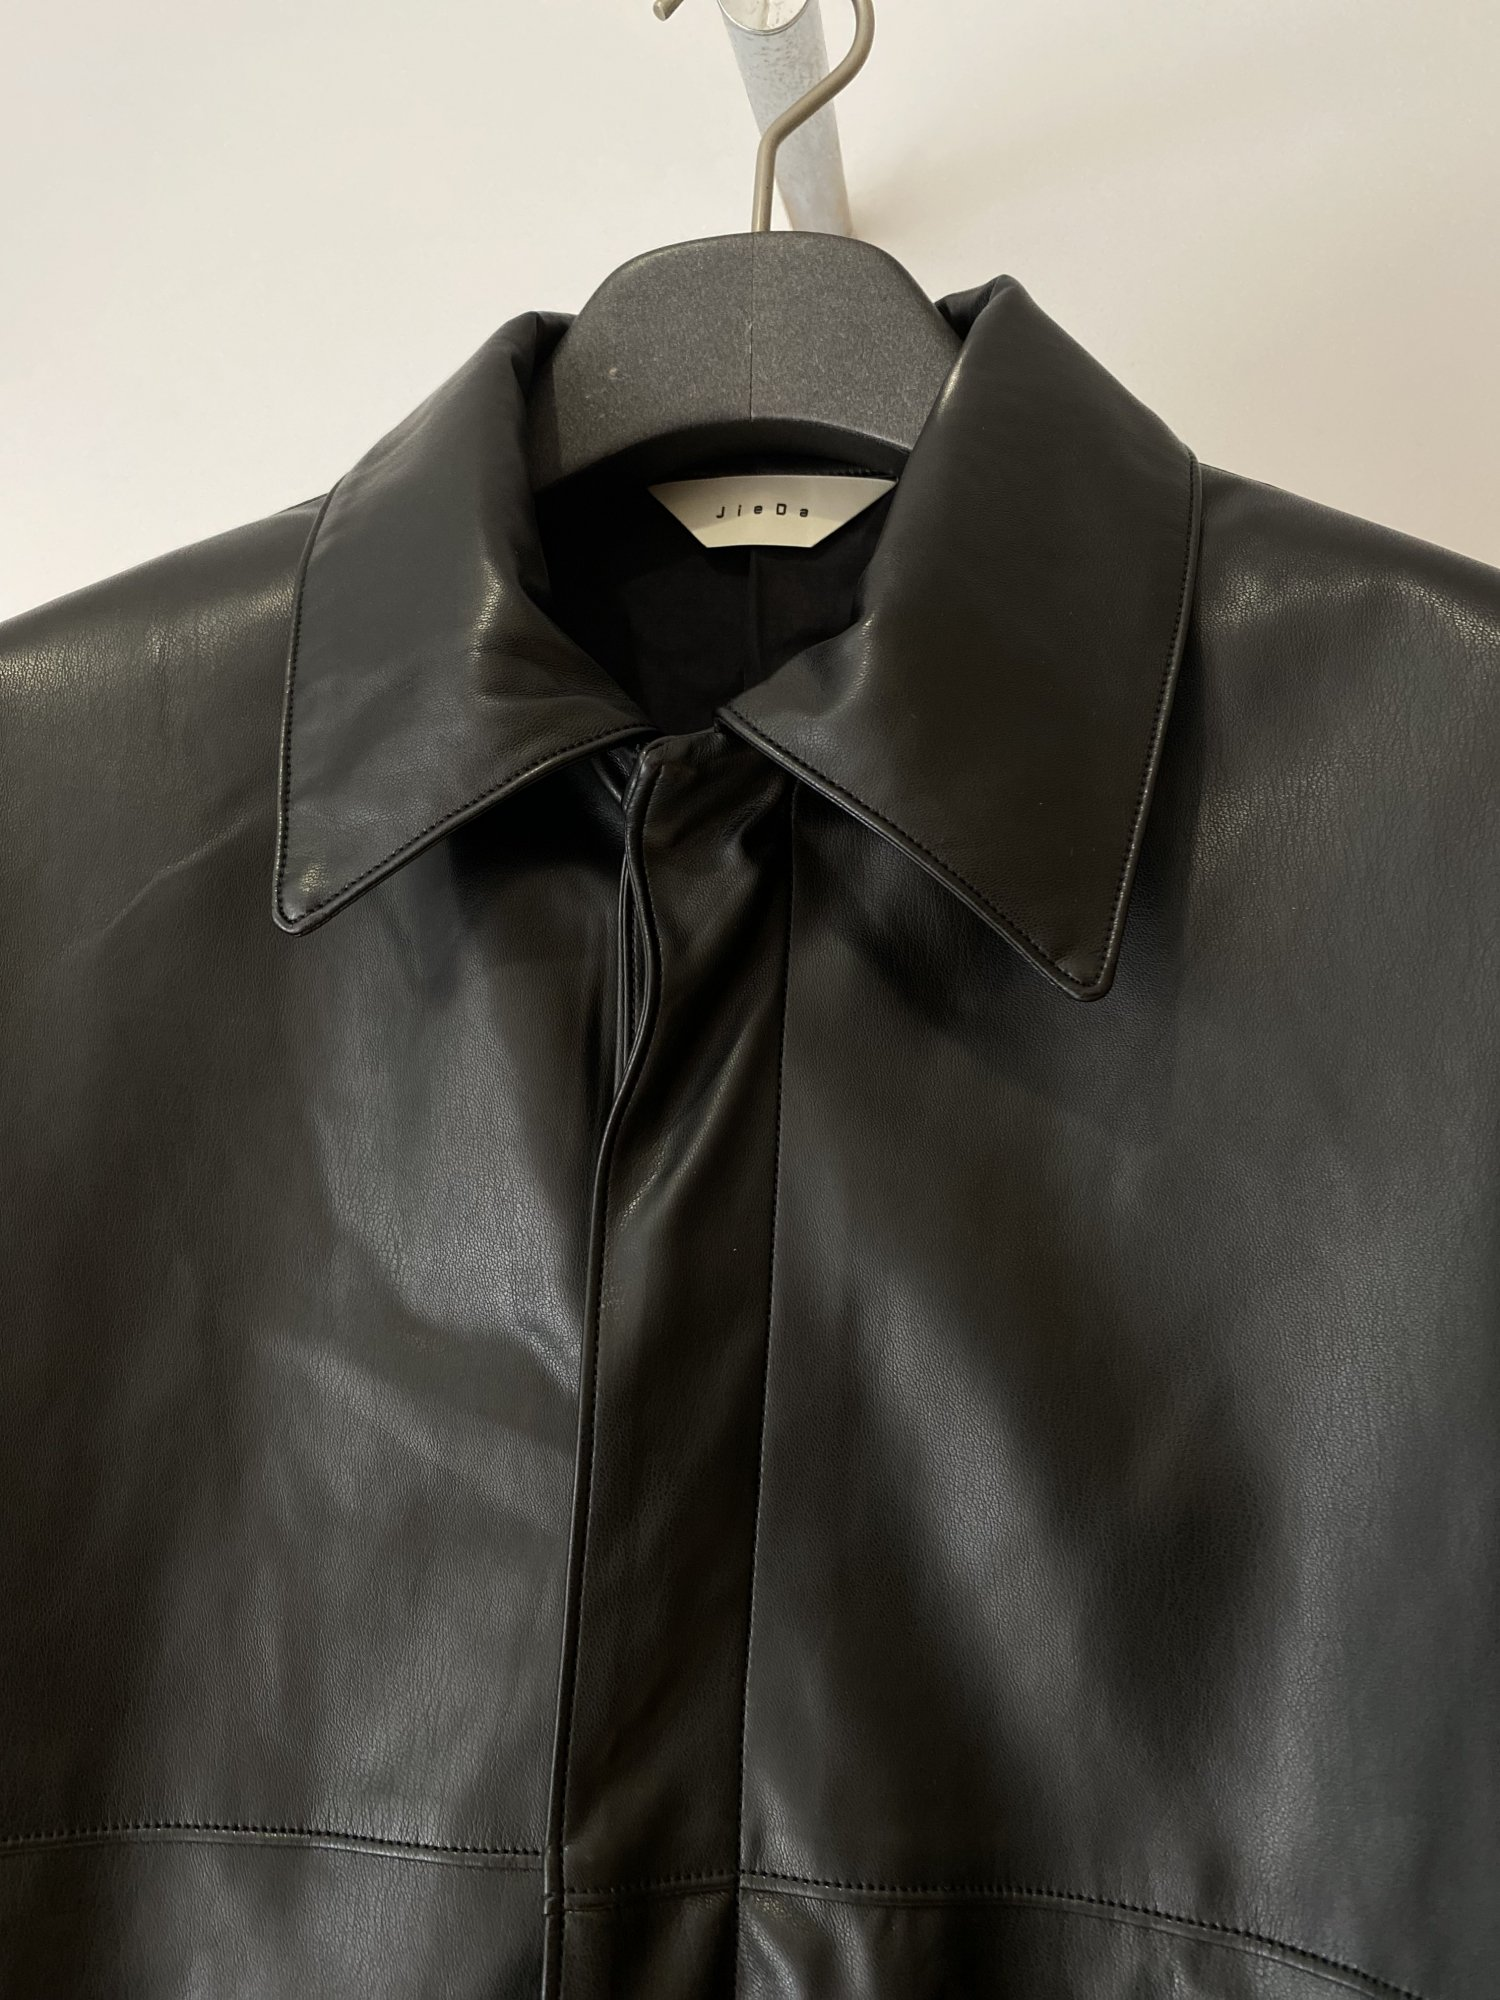 JieDa<br />21AW FAKE LEATHER COAT / BLACK<img class='new_mark_img2' src='https://img.shop-pro.jp/img/new/icons14.gif' style='border:none;display:inline;margin:0px;padding:0px;width:auto;' />